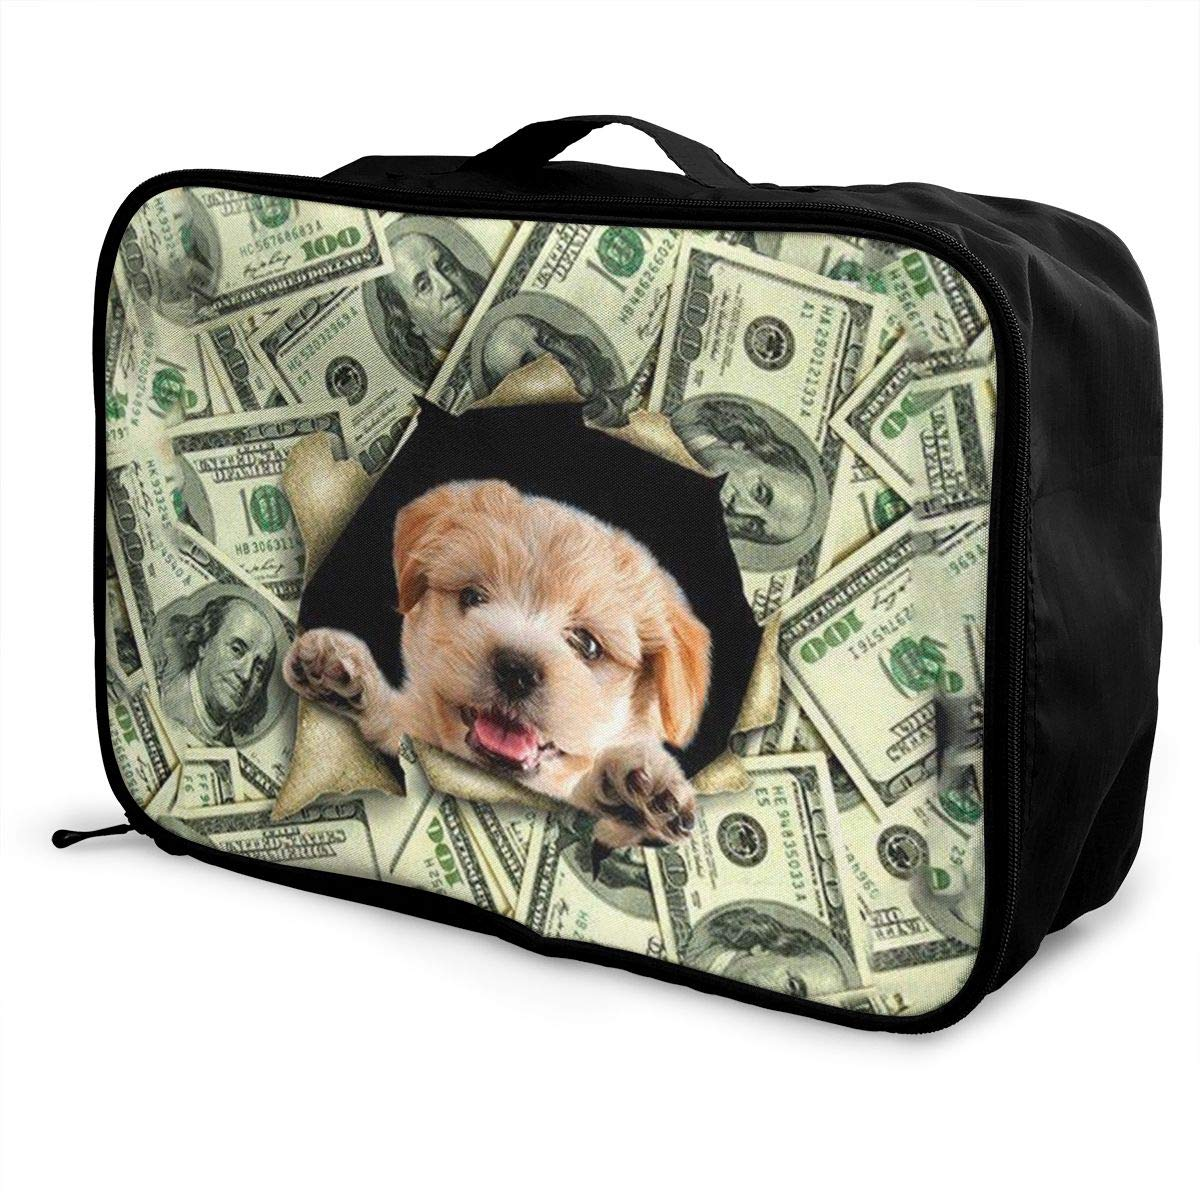 Lightweight Large Capacity Duffel Portable Luggage Bag Money Pattern Dog Travel Waterproof Foldable Storage Carry Tote Bag